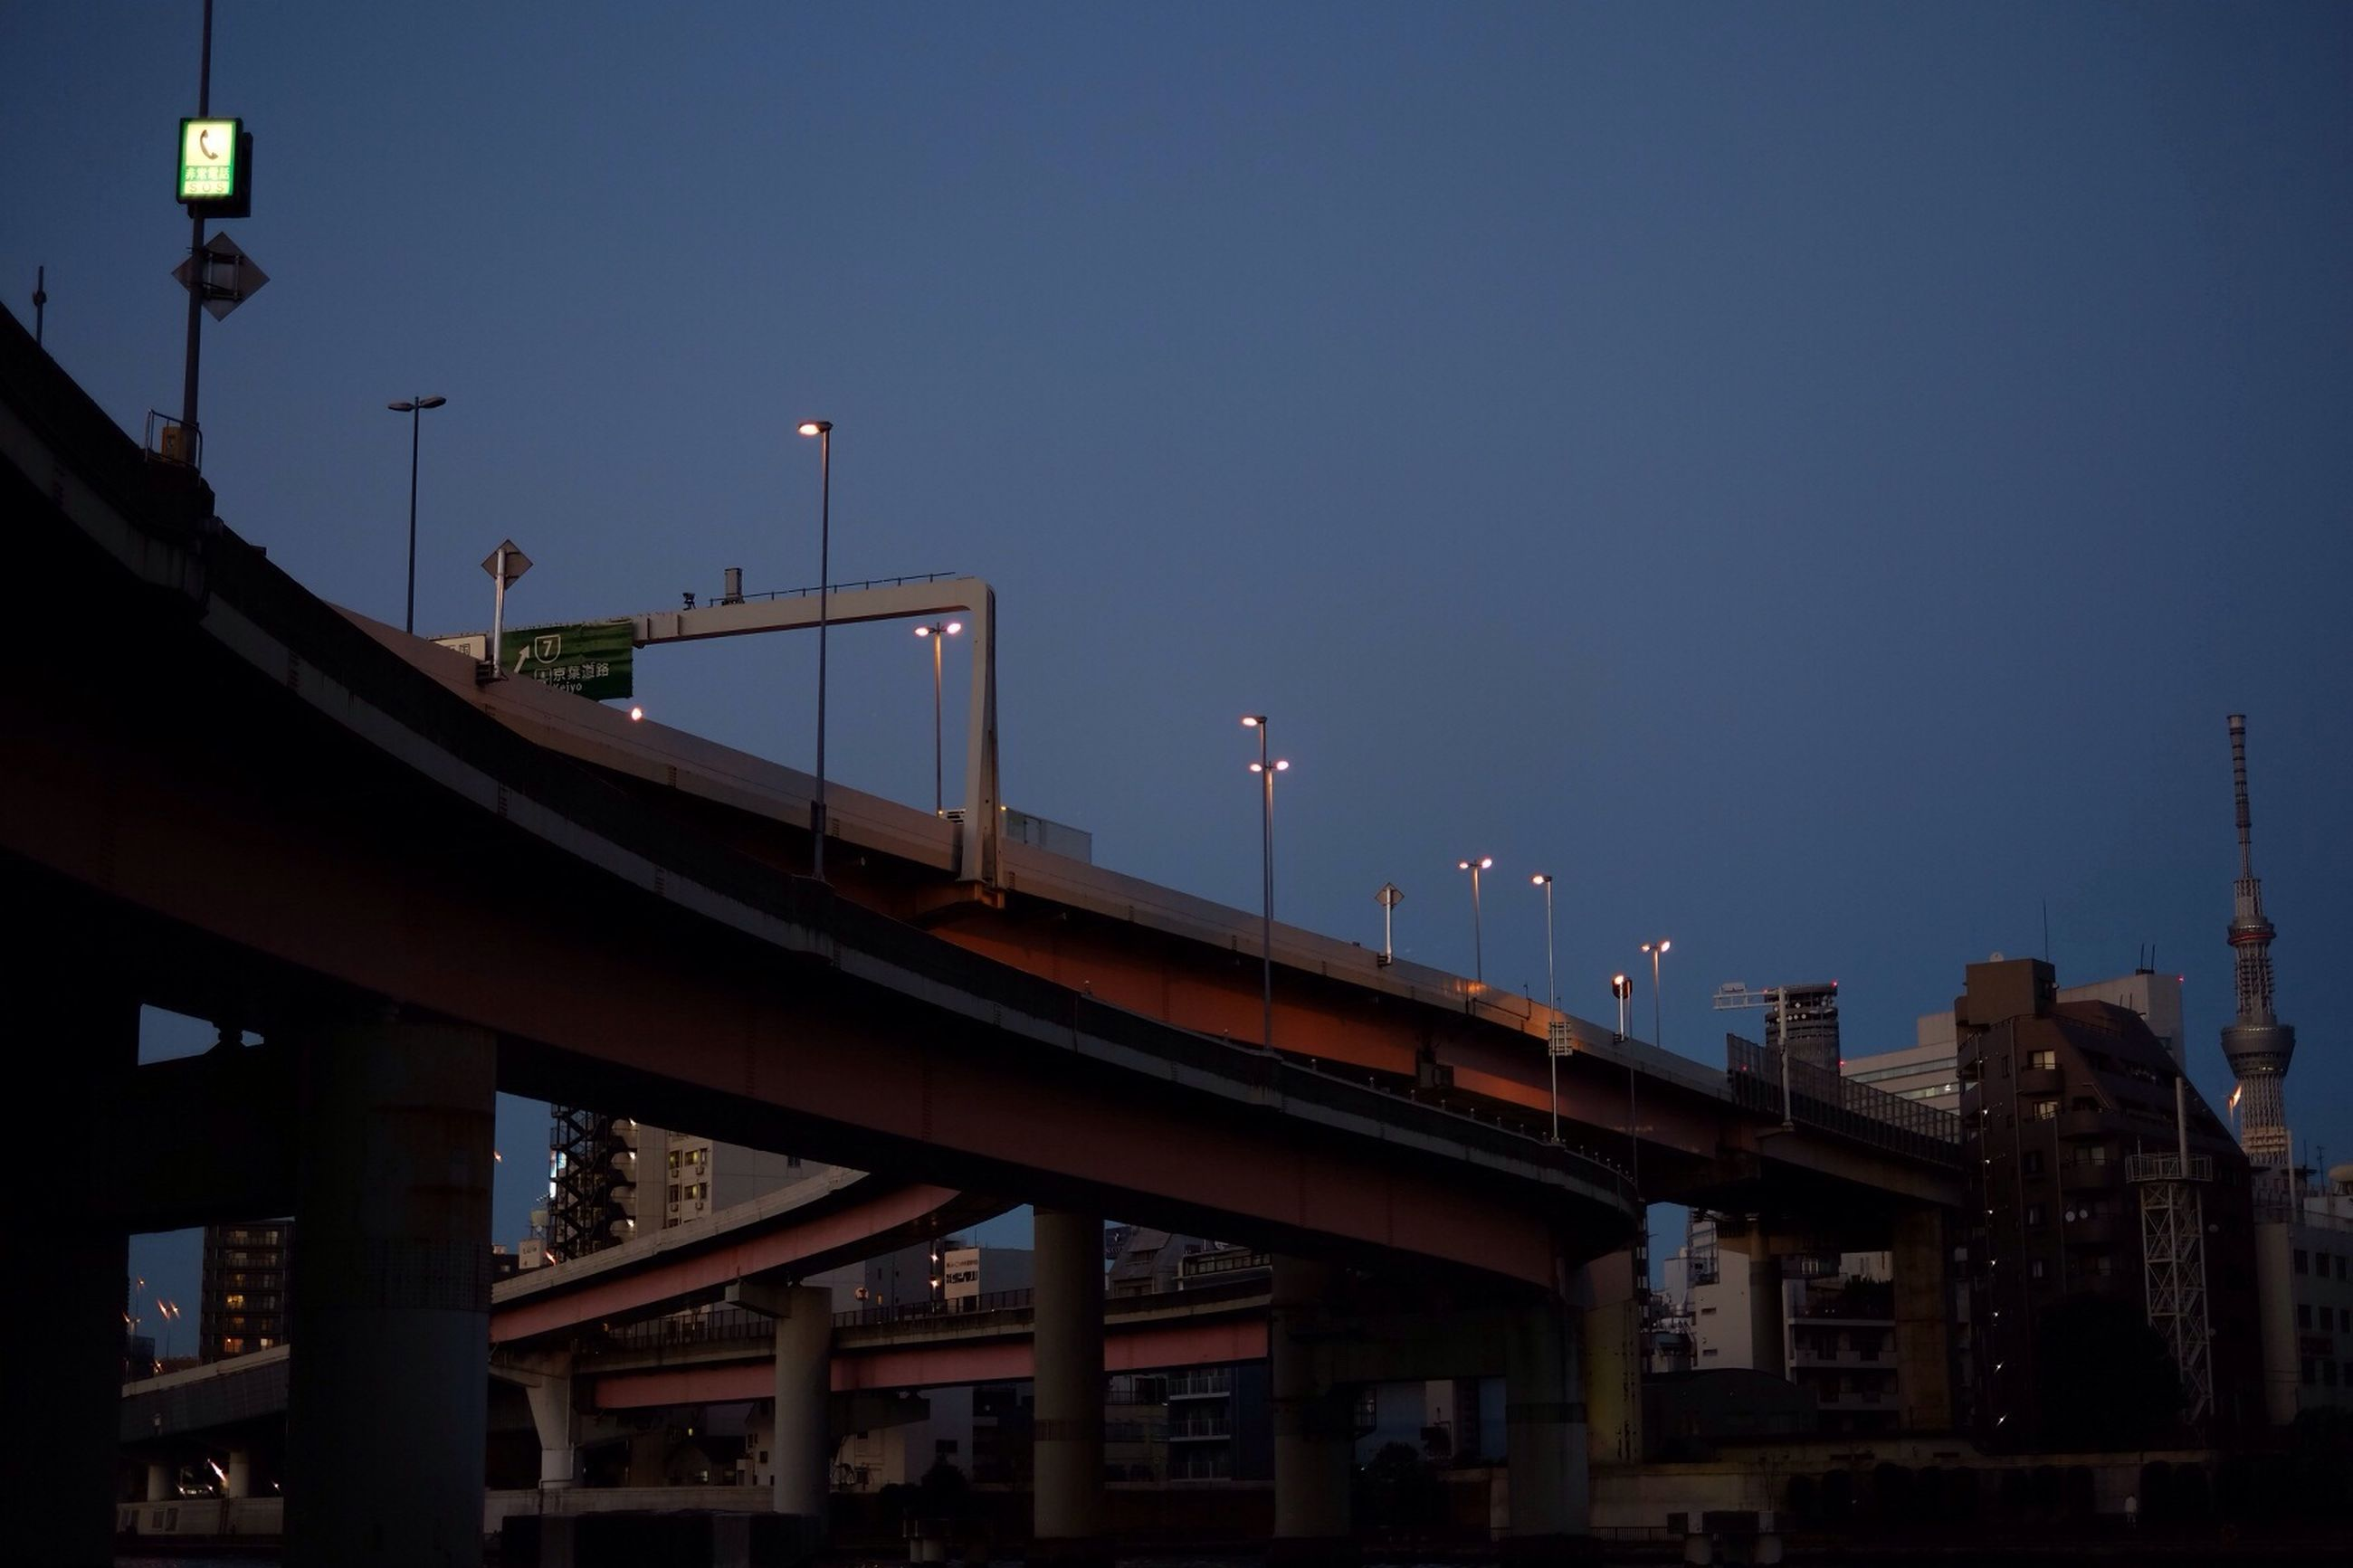 illuminated, built structure, architecture, street light, lighting equipment, clear sky, night, low angle view, building exterior, copy space, sky, dusk, blue, moon, connection, electric light, railing, outdoors, bridge - man made structure, city